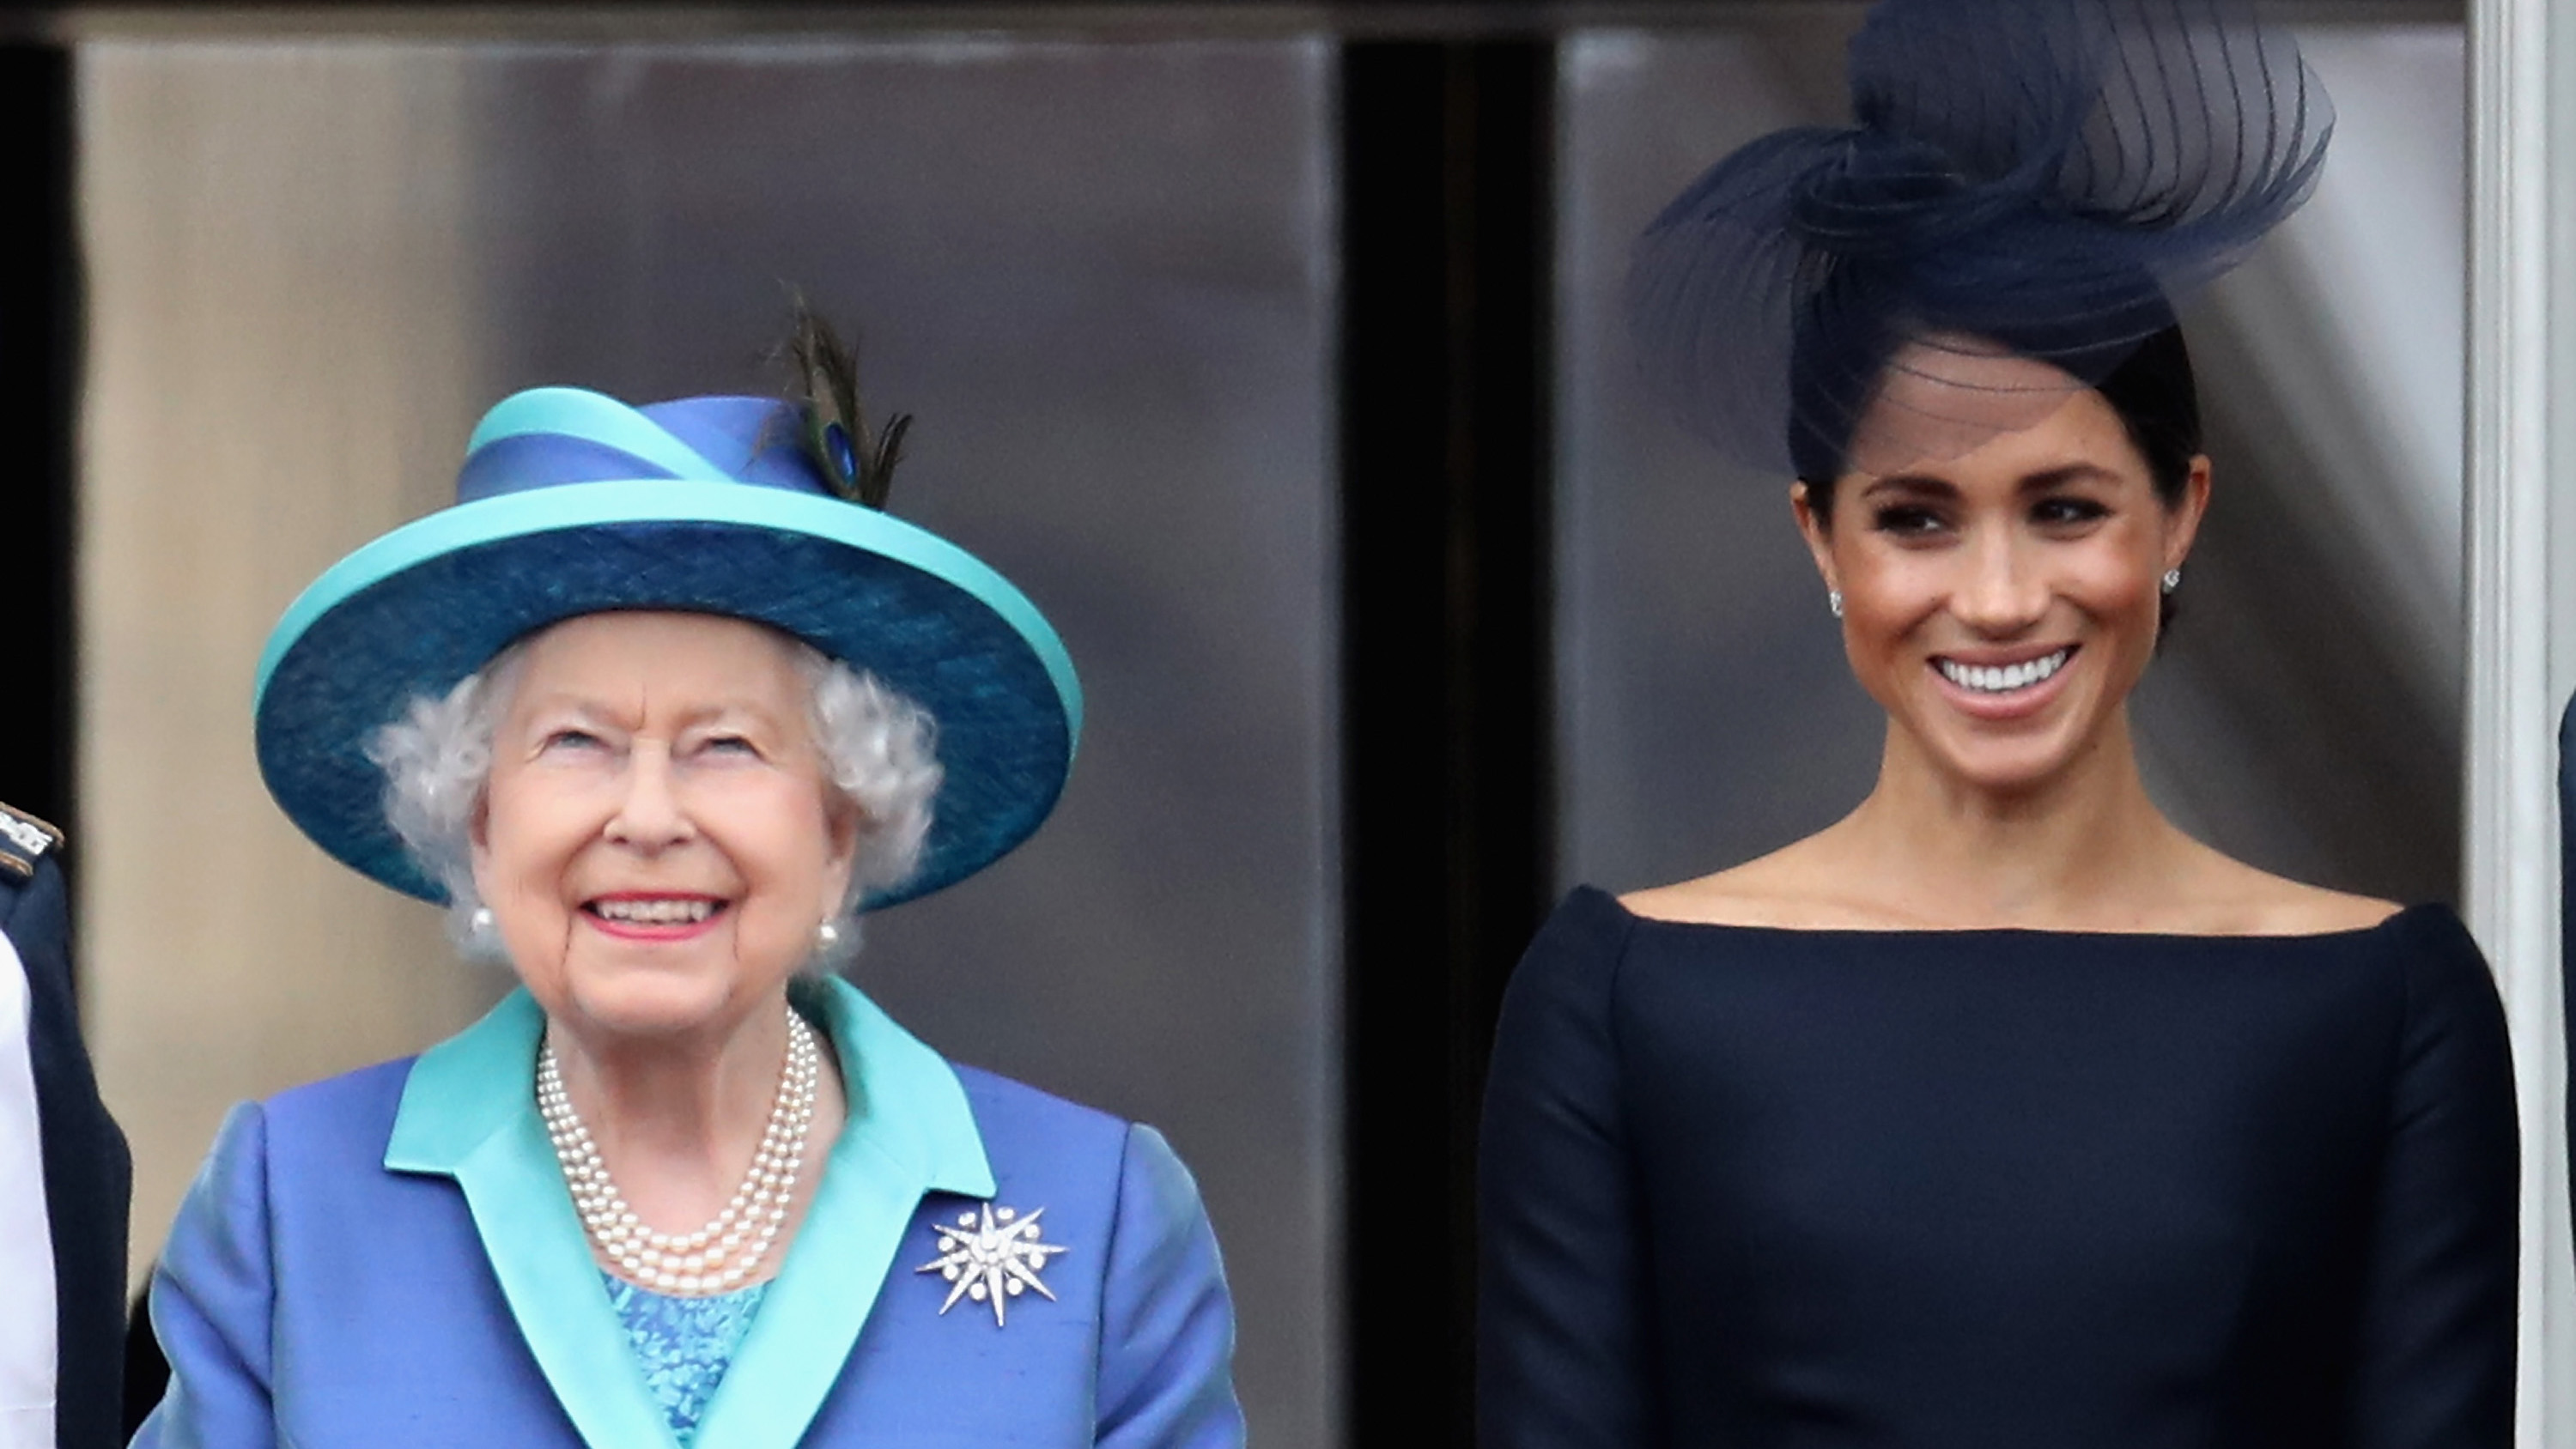 Meghan Markle's Milliner Says Her Style Takes After Queen Elizabeth's: 'There Is a Restraint and Elegance to Her'